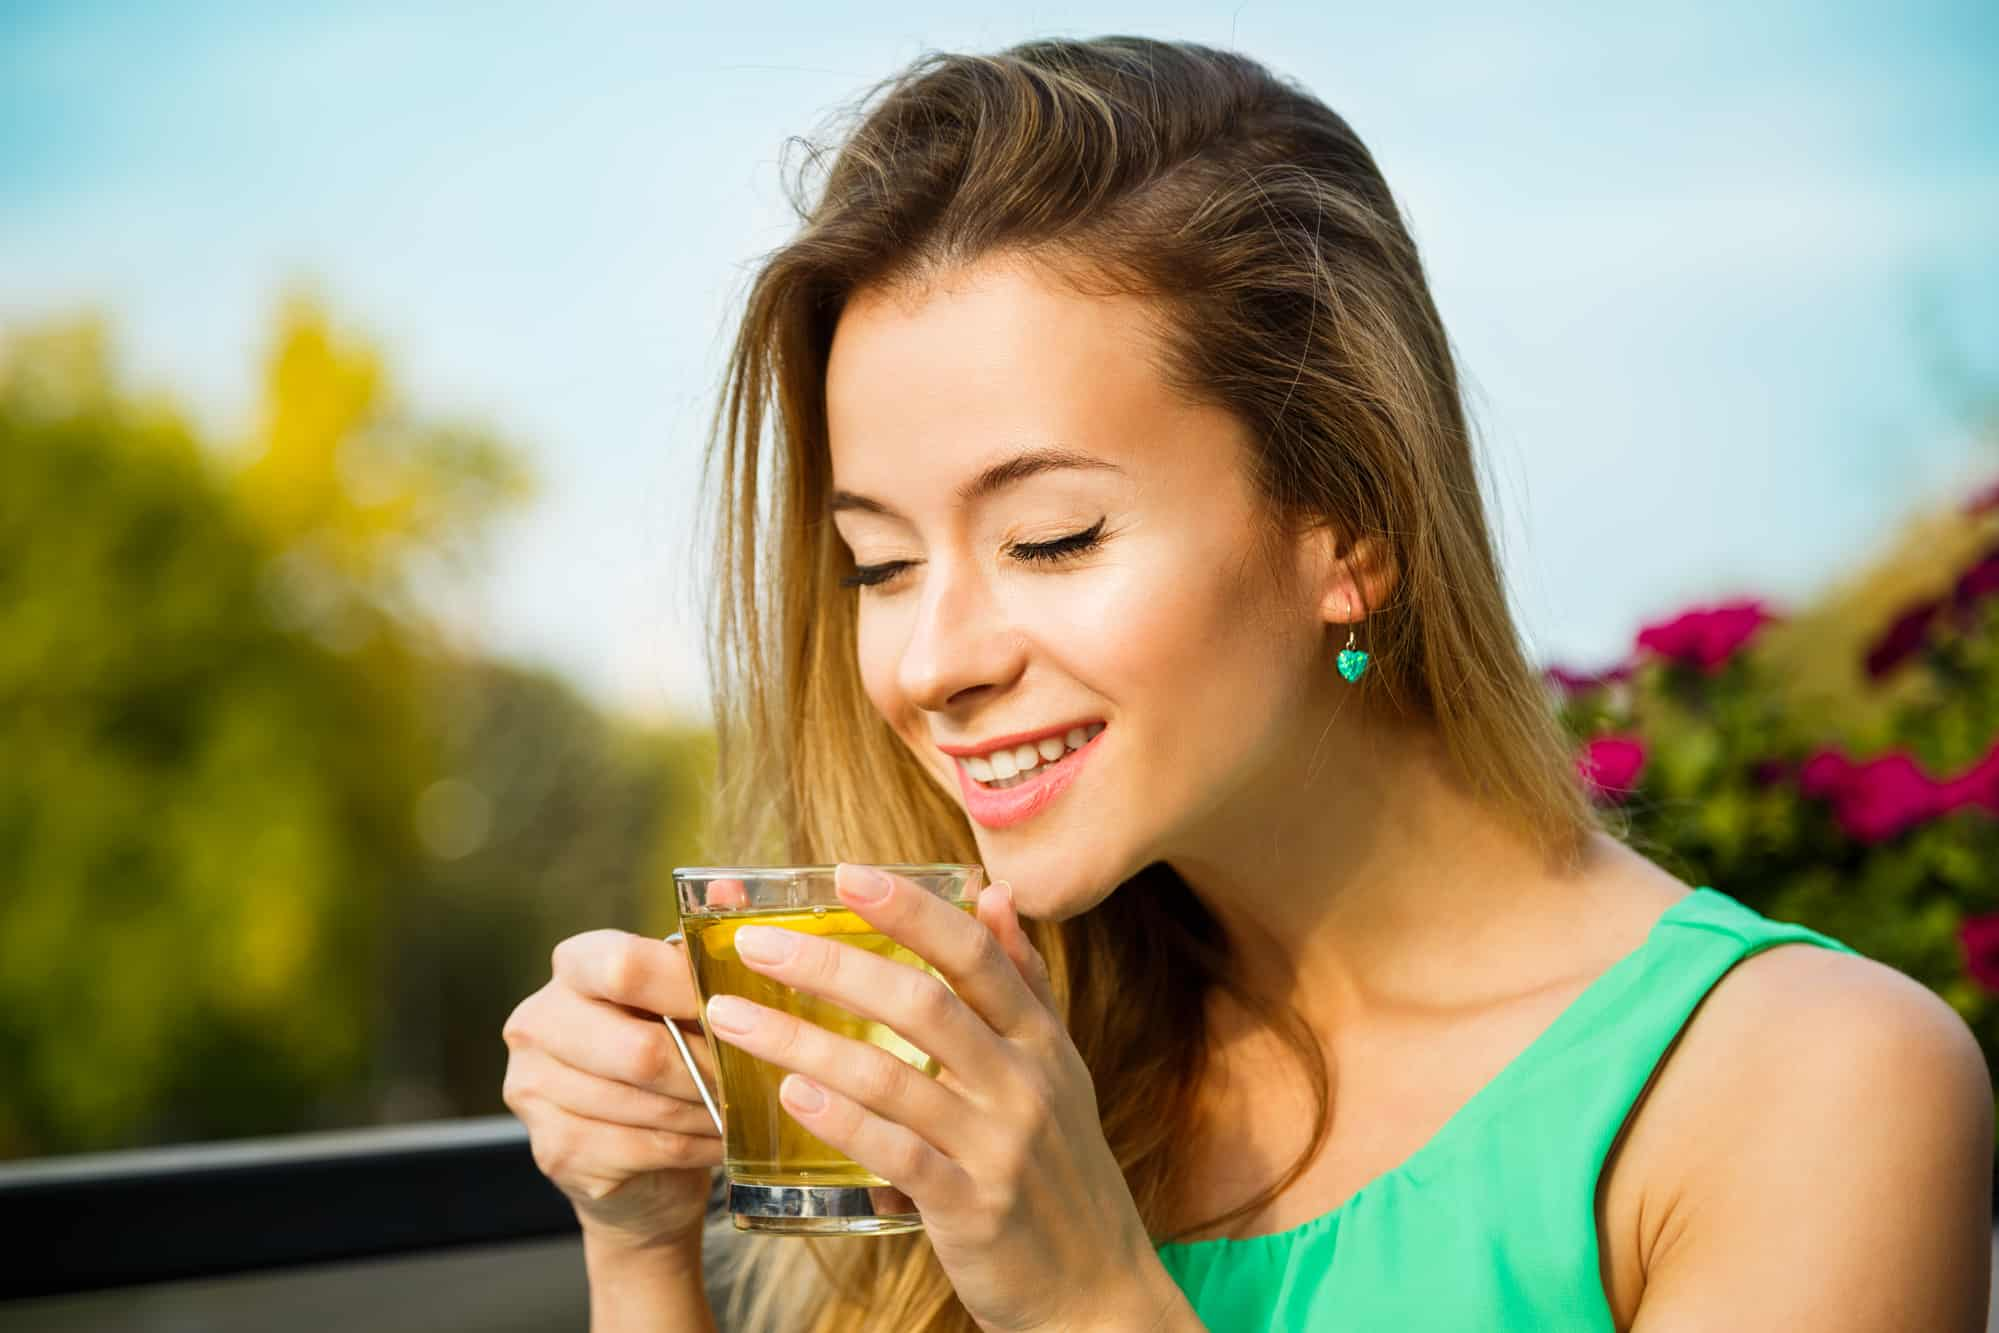 Difference Between Drinking Green Tea And Normal Tea Explained